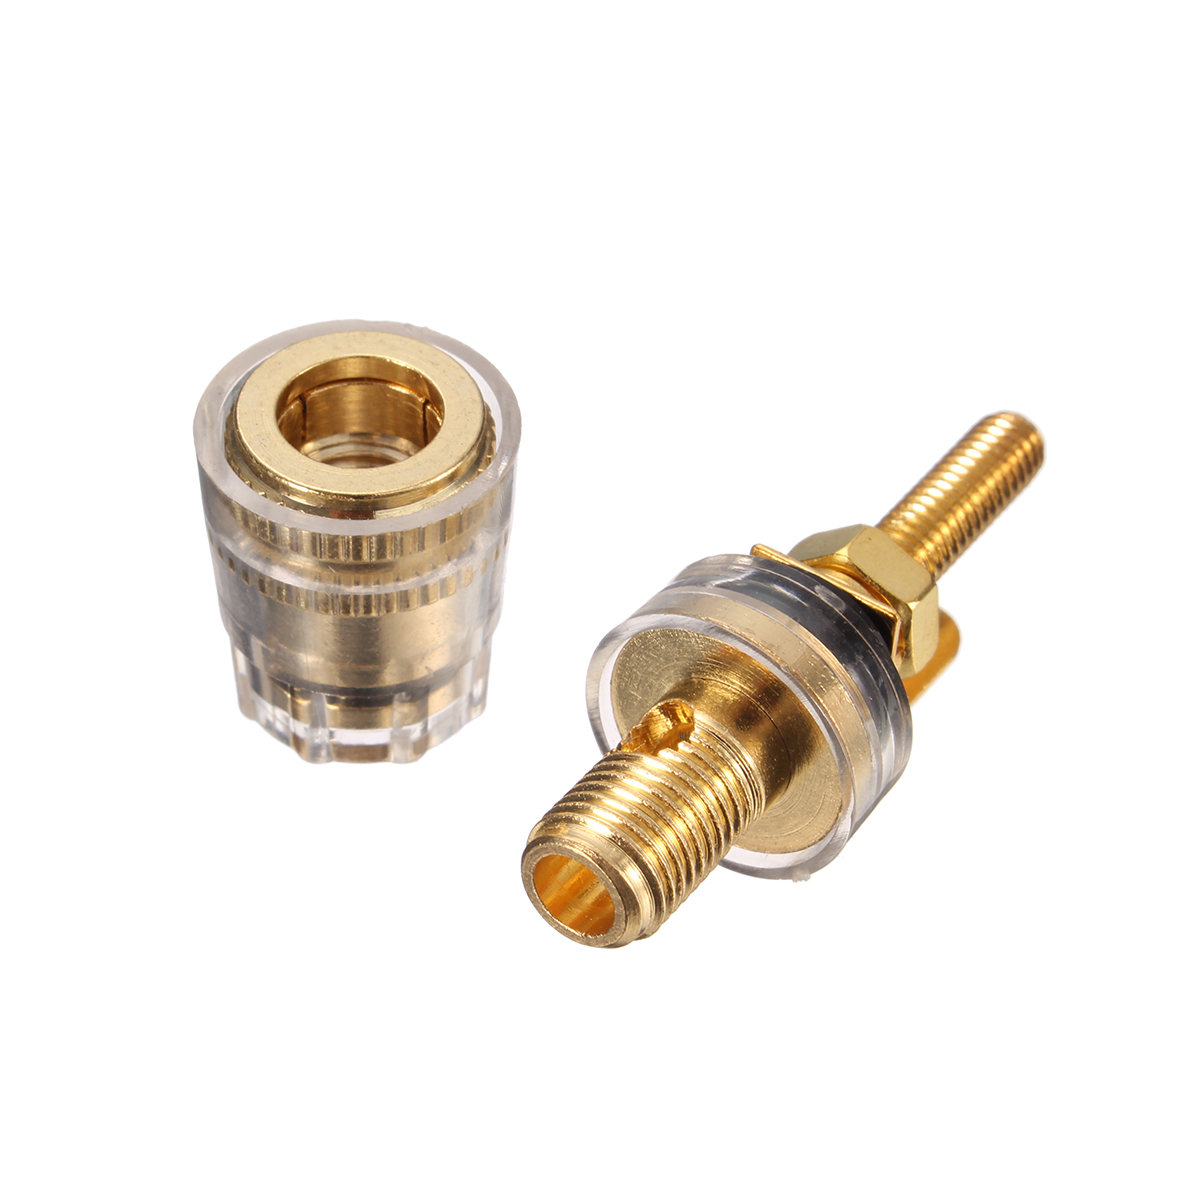 Copper Crystal Audio Speaker Amplifier Terminal For 4mm Banana Plug